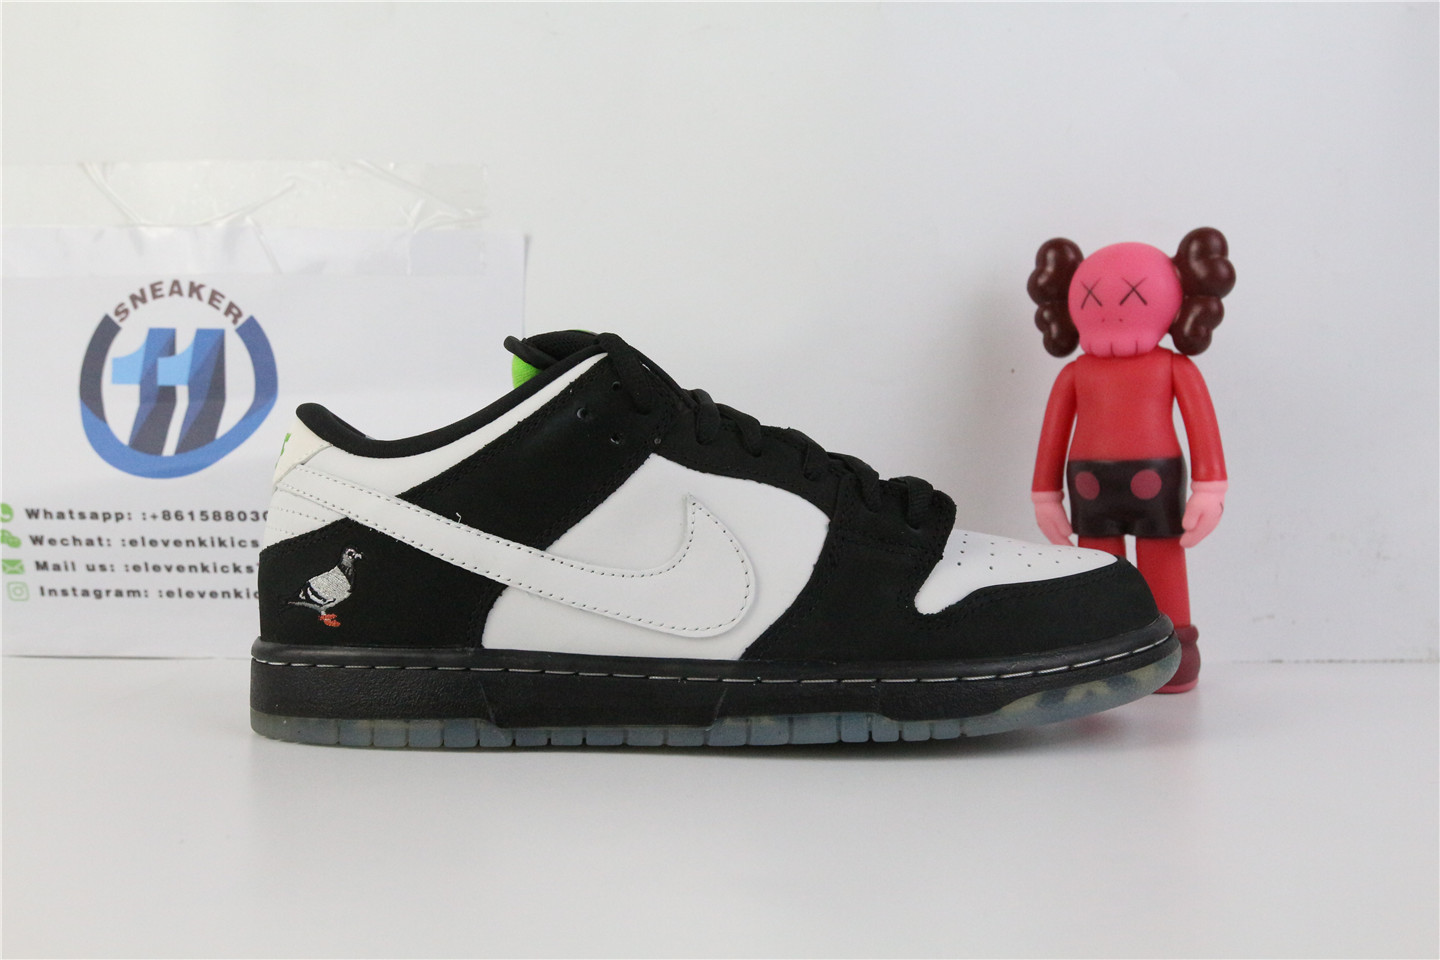 Nike SB Dunk Low Staple Panda Pigeon